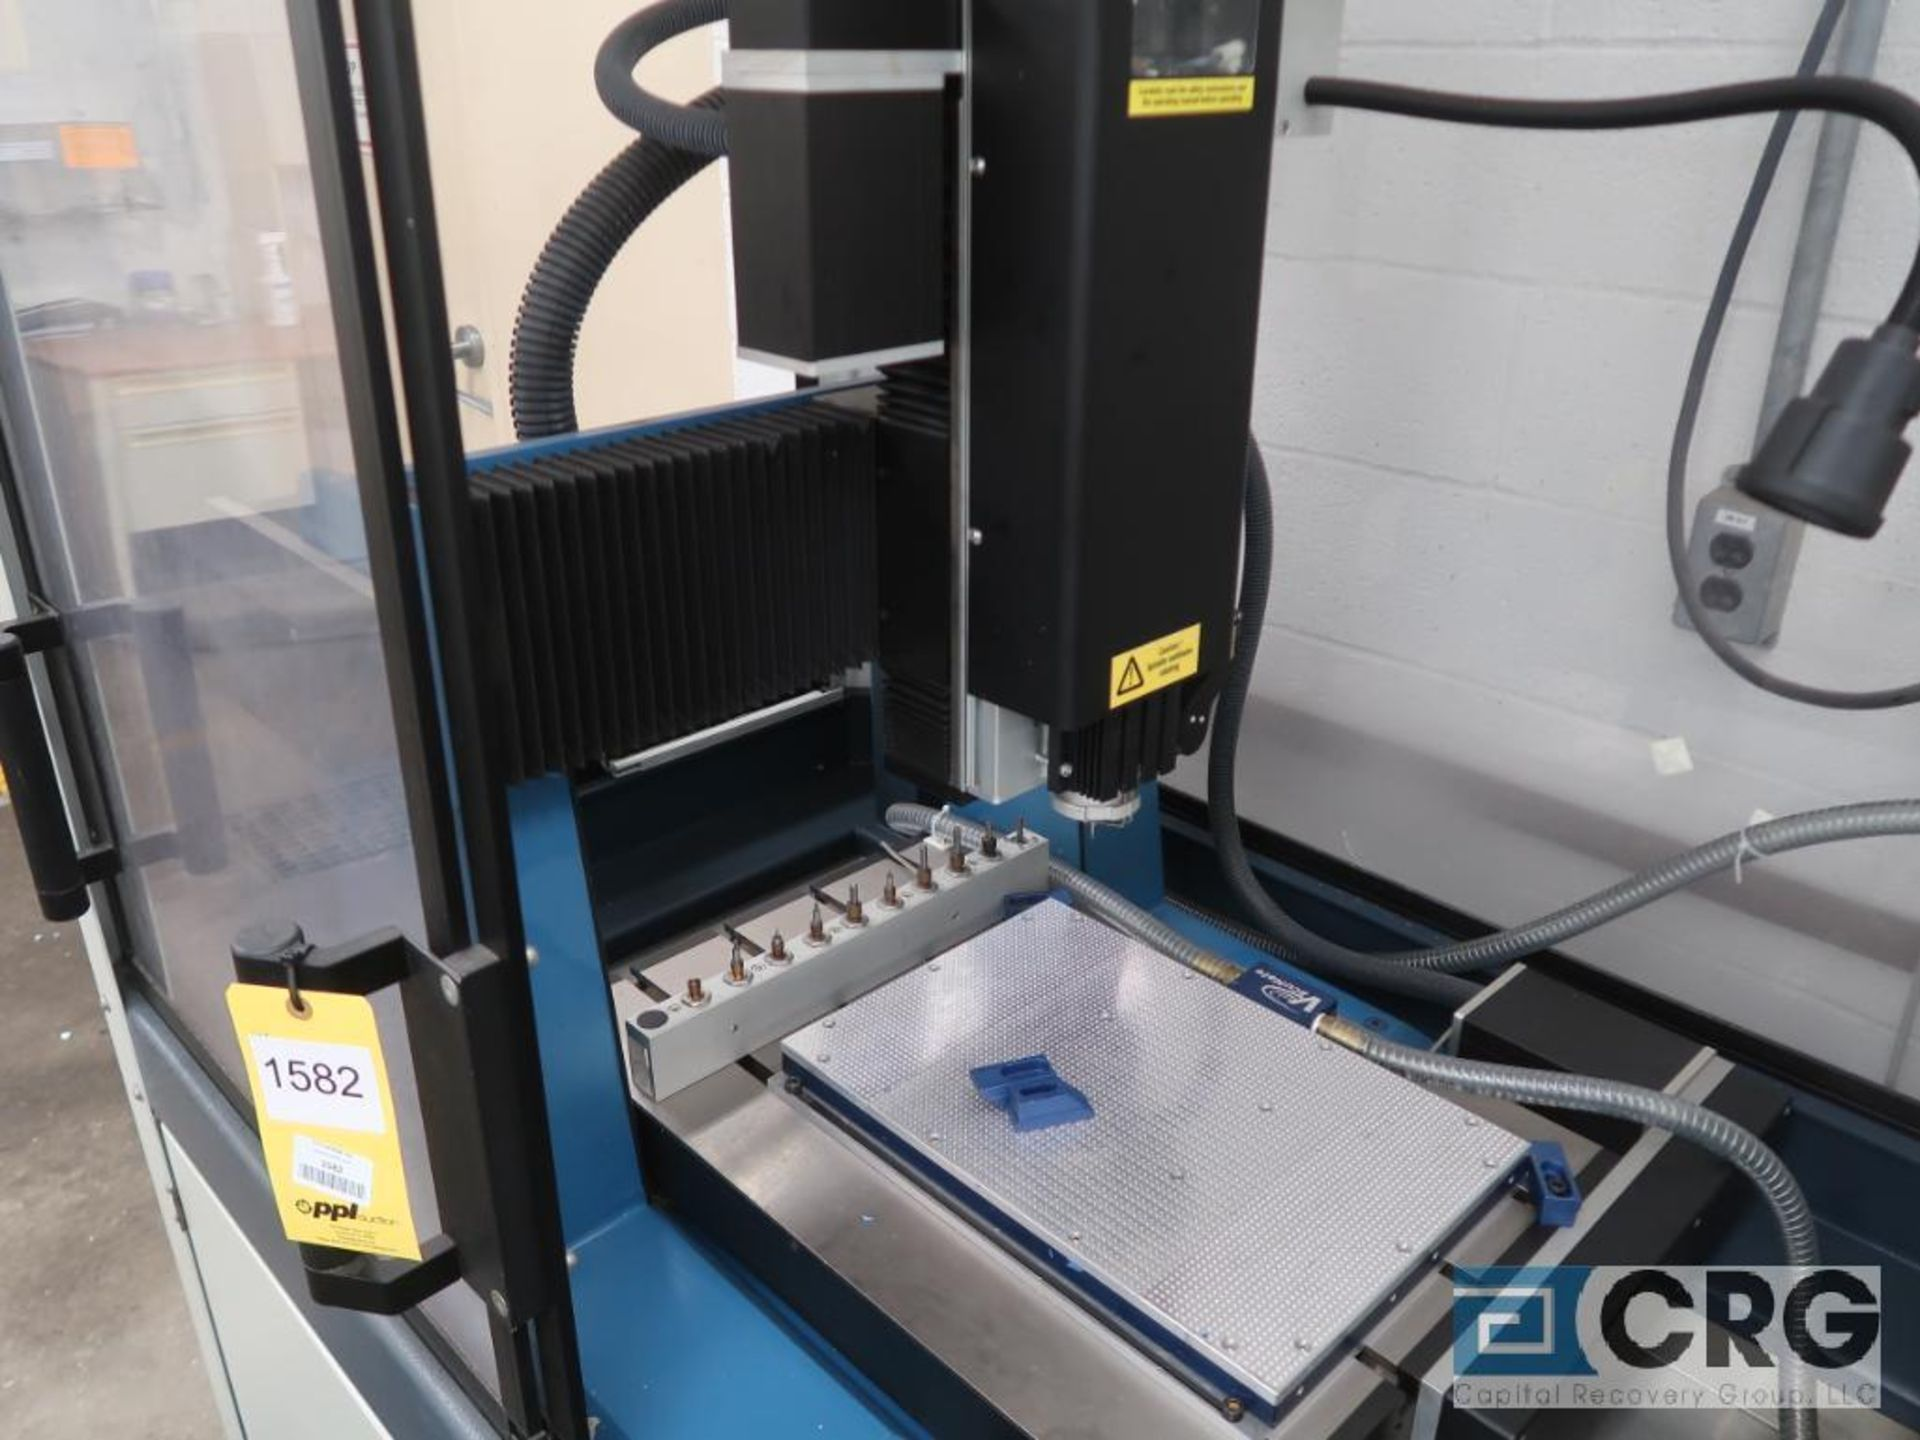 2001 Datron illing engraving center, m/n CAT3D-M4, s/n 40681, 3 axis, CNC, 9 position tool - Image 2 of 8